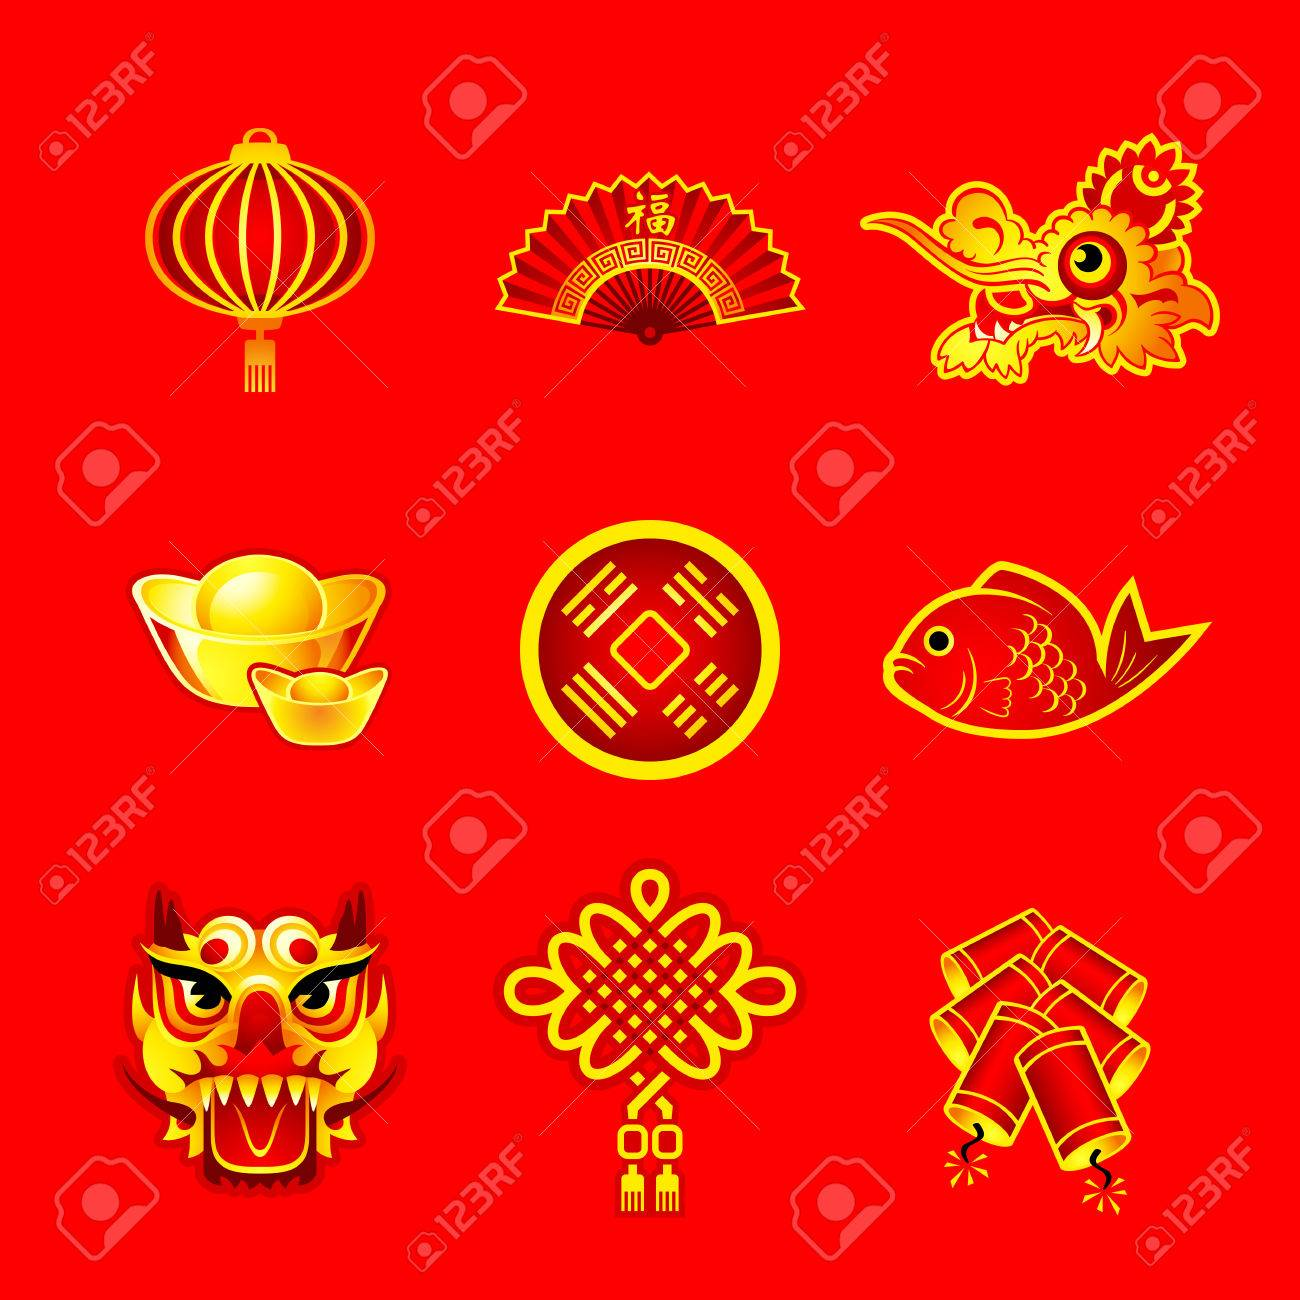 chinese new year decorations ornaments and symbols royalty free cliparts vectors and stock illustration image 43638664 123rf com